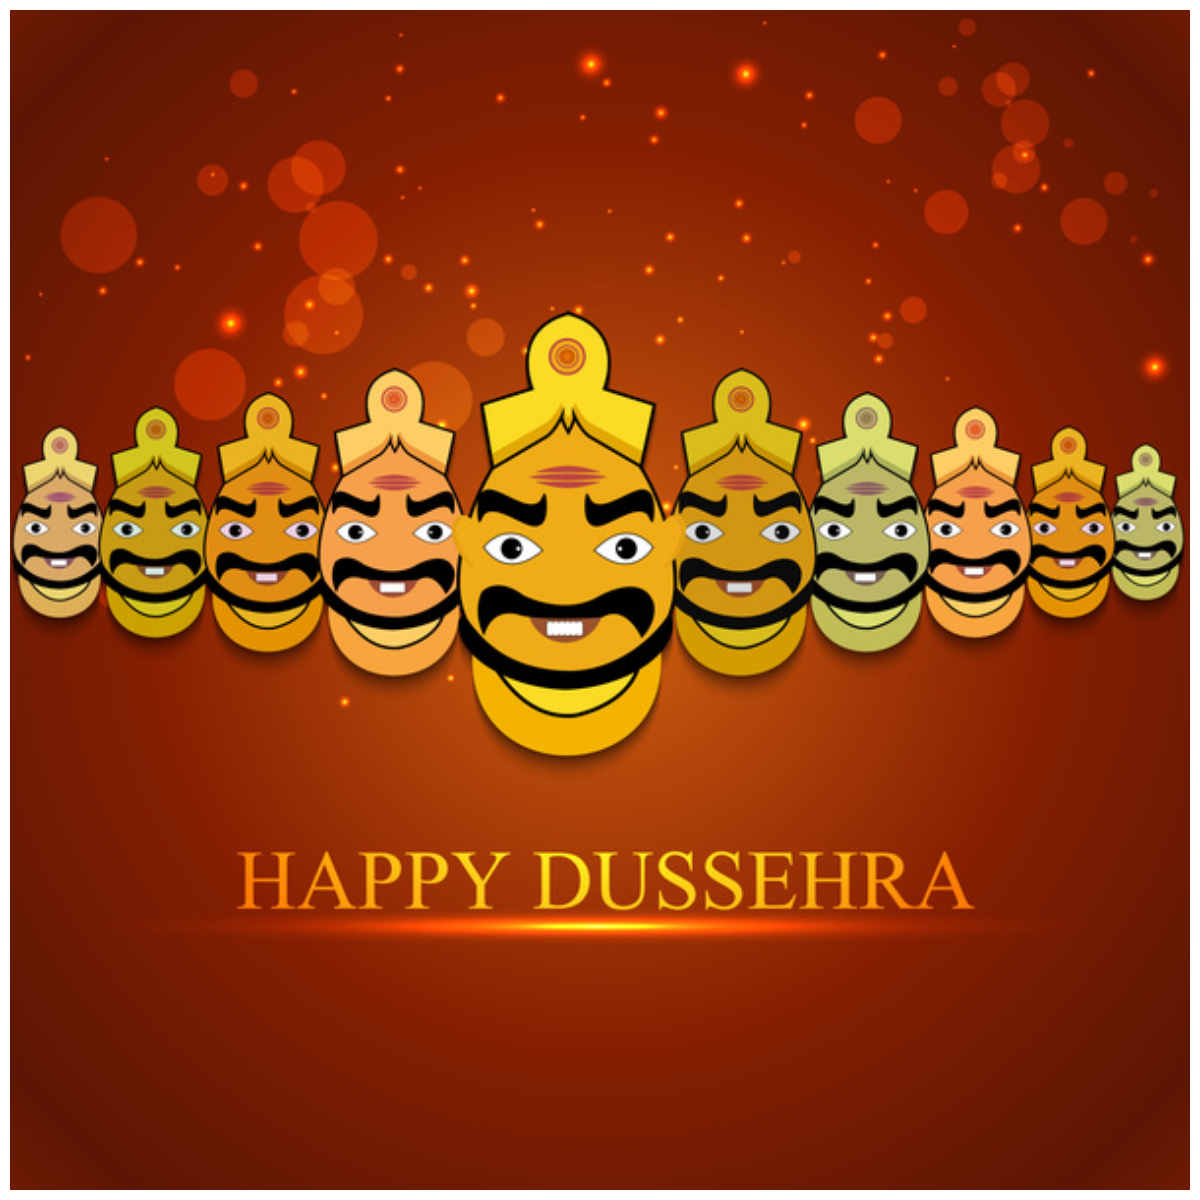 Happy Dussehra 2018 Wishes Messages And Images In Hindi To Share